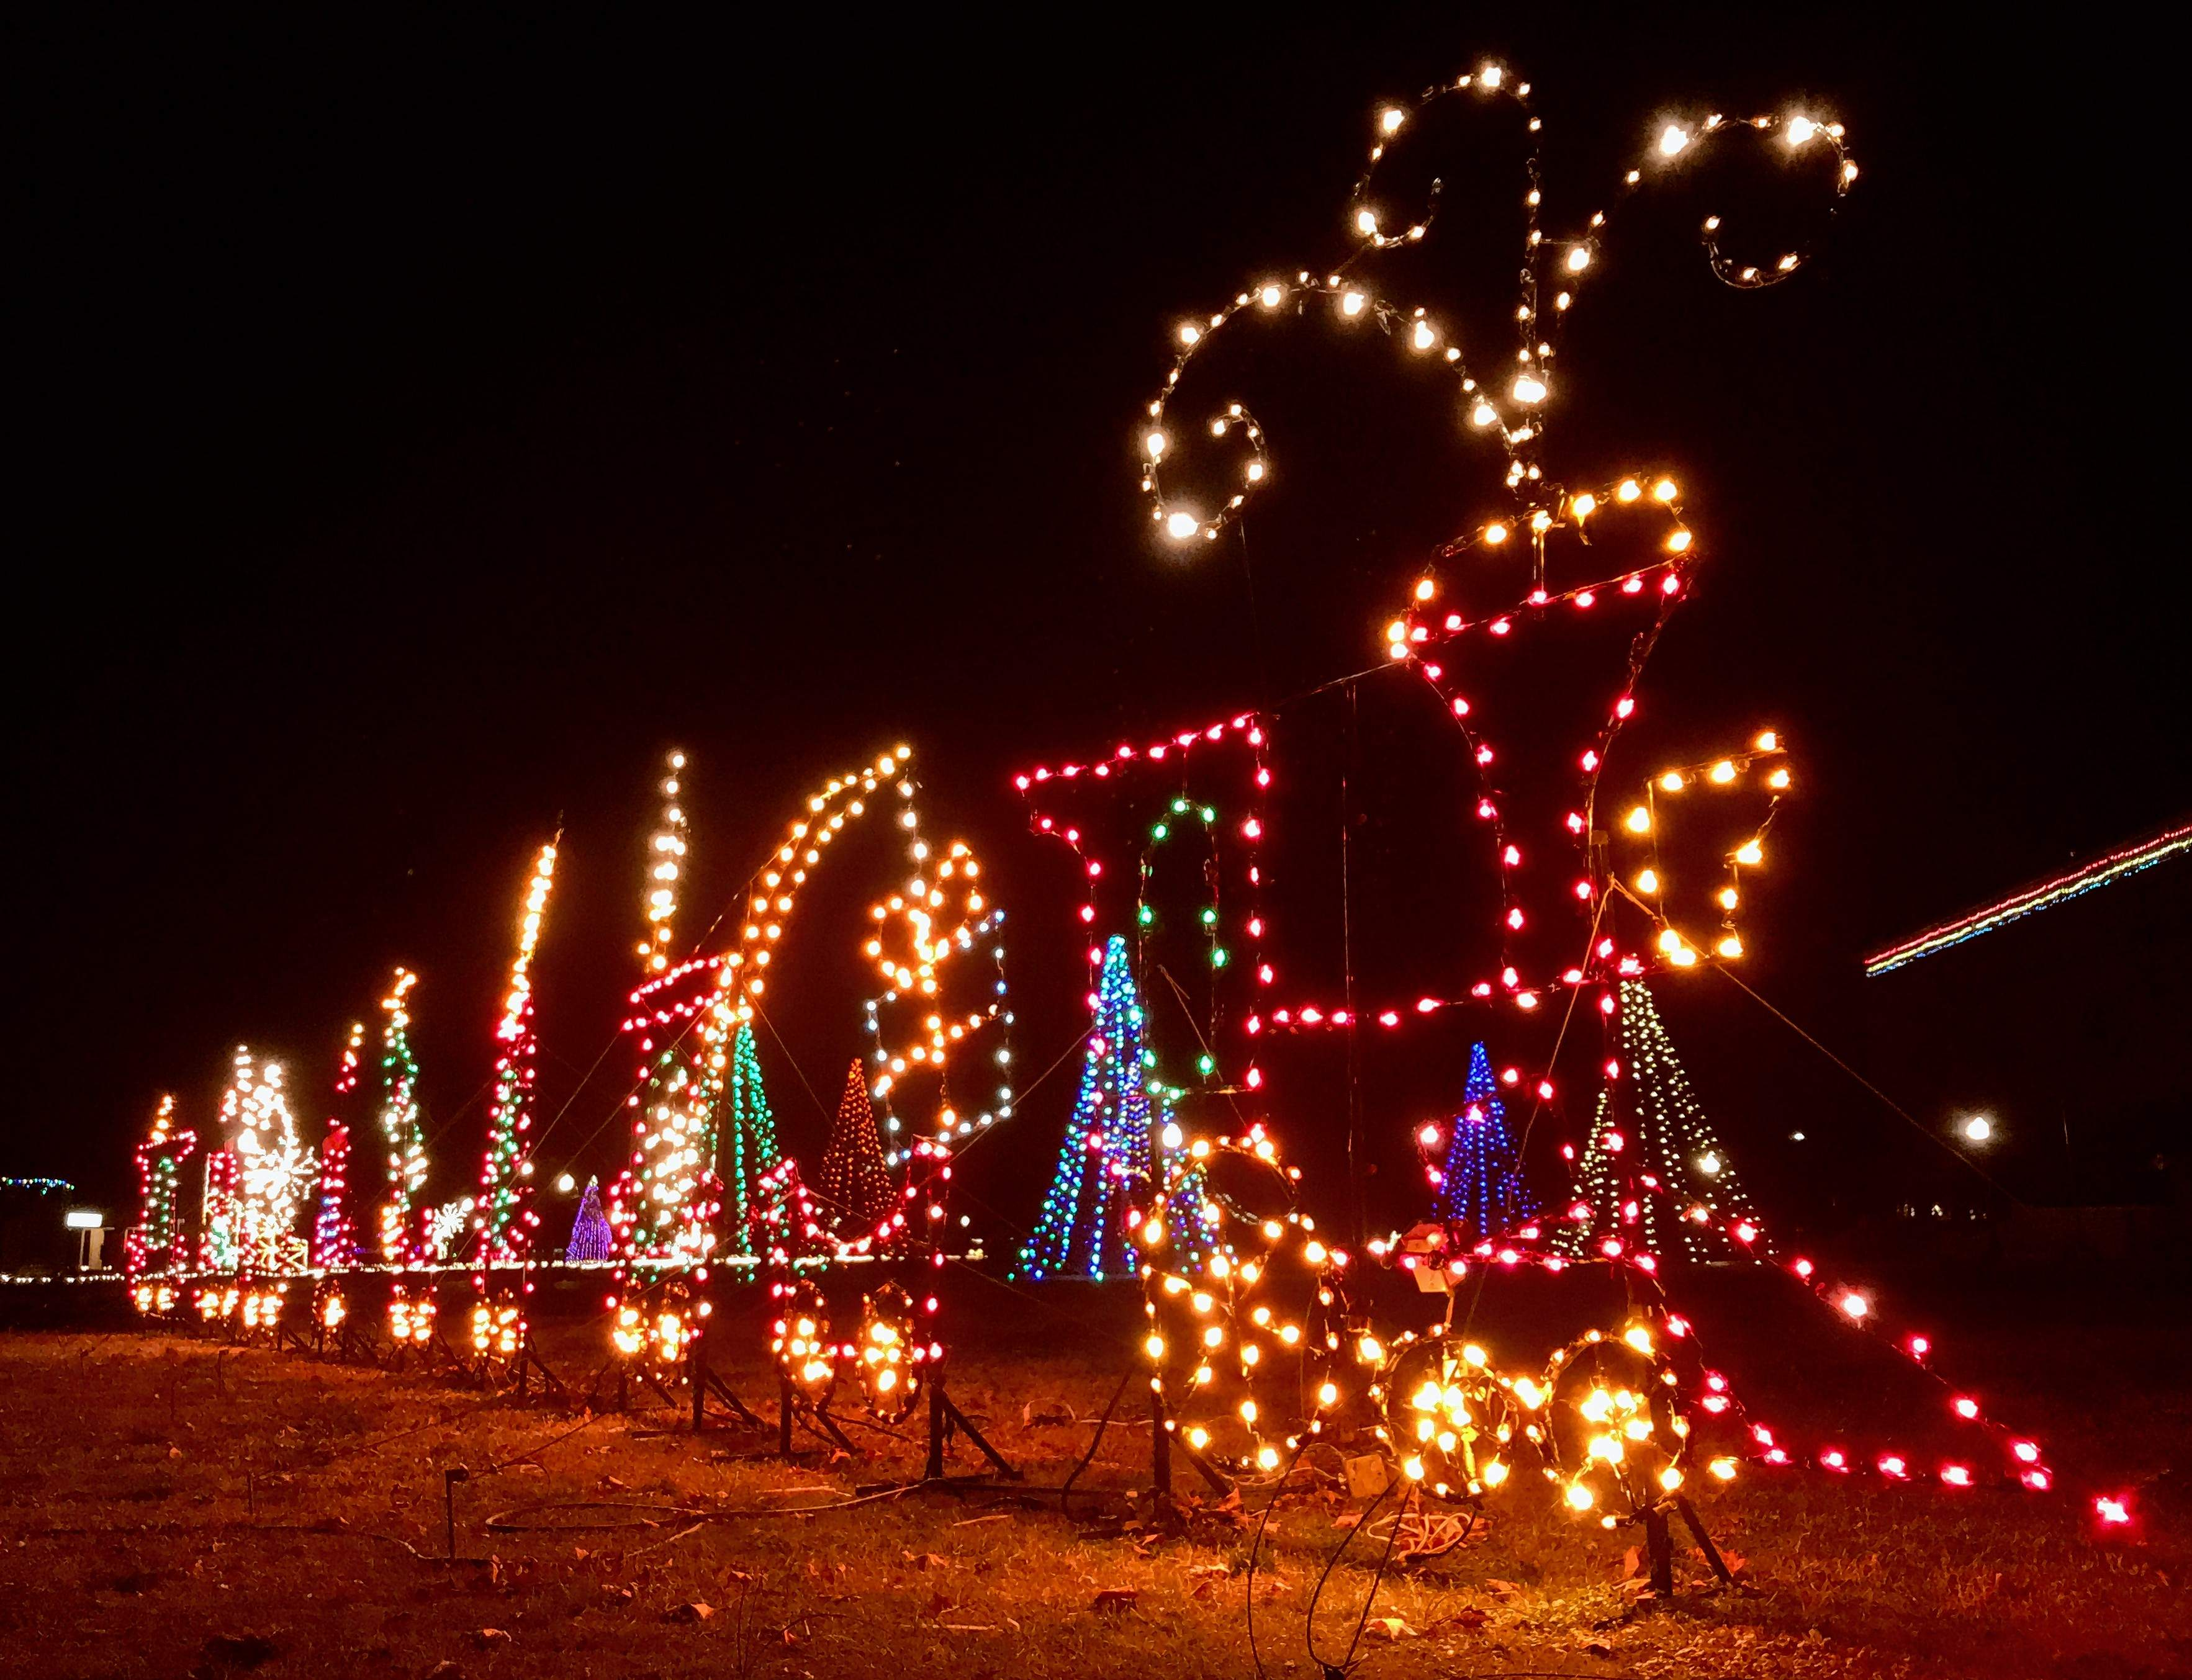 This train puts on a flashy show near the grandstand at the fairgrounds. Admission to the holiday lights spectacular is $10 per vehicle.